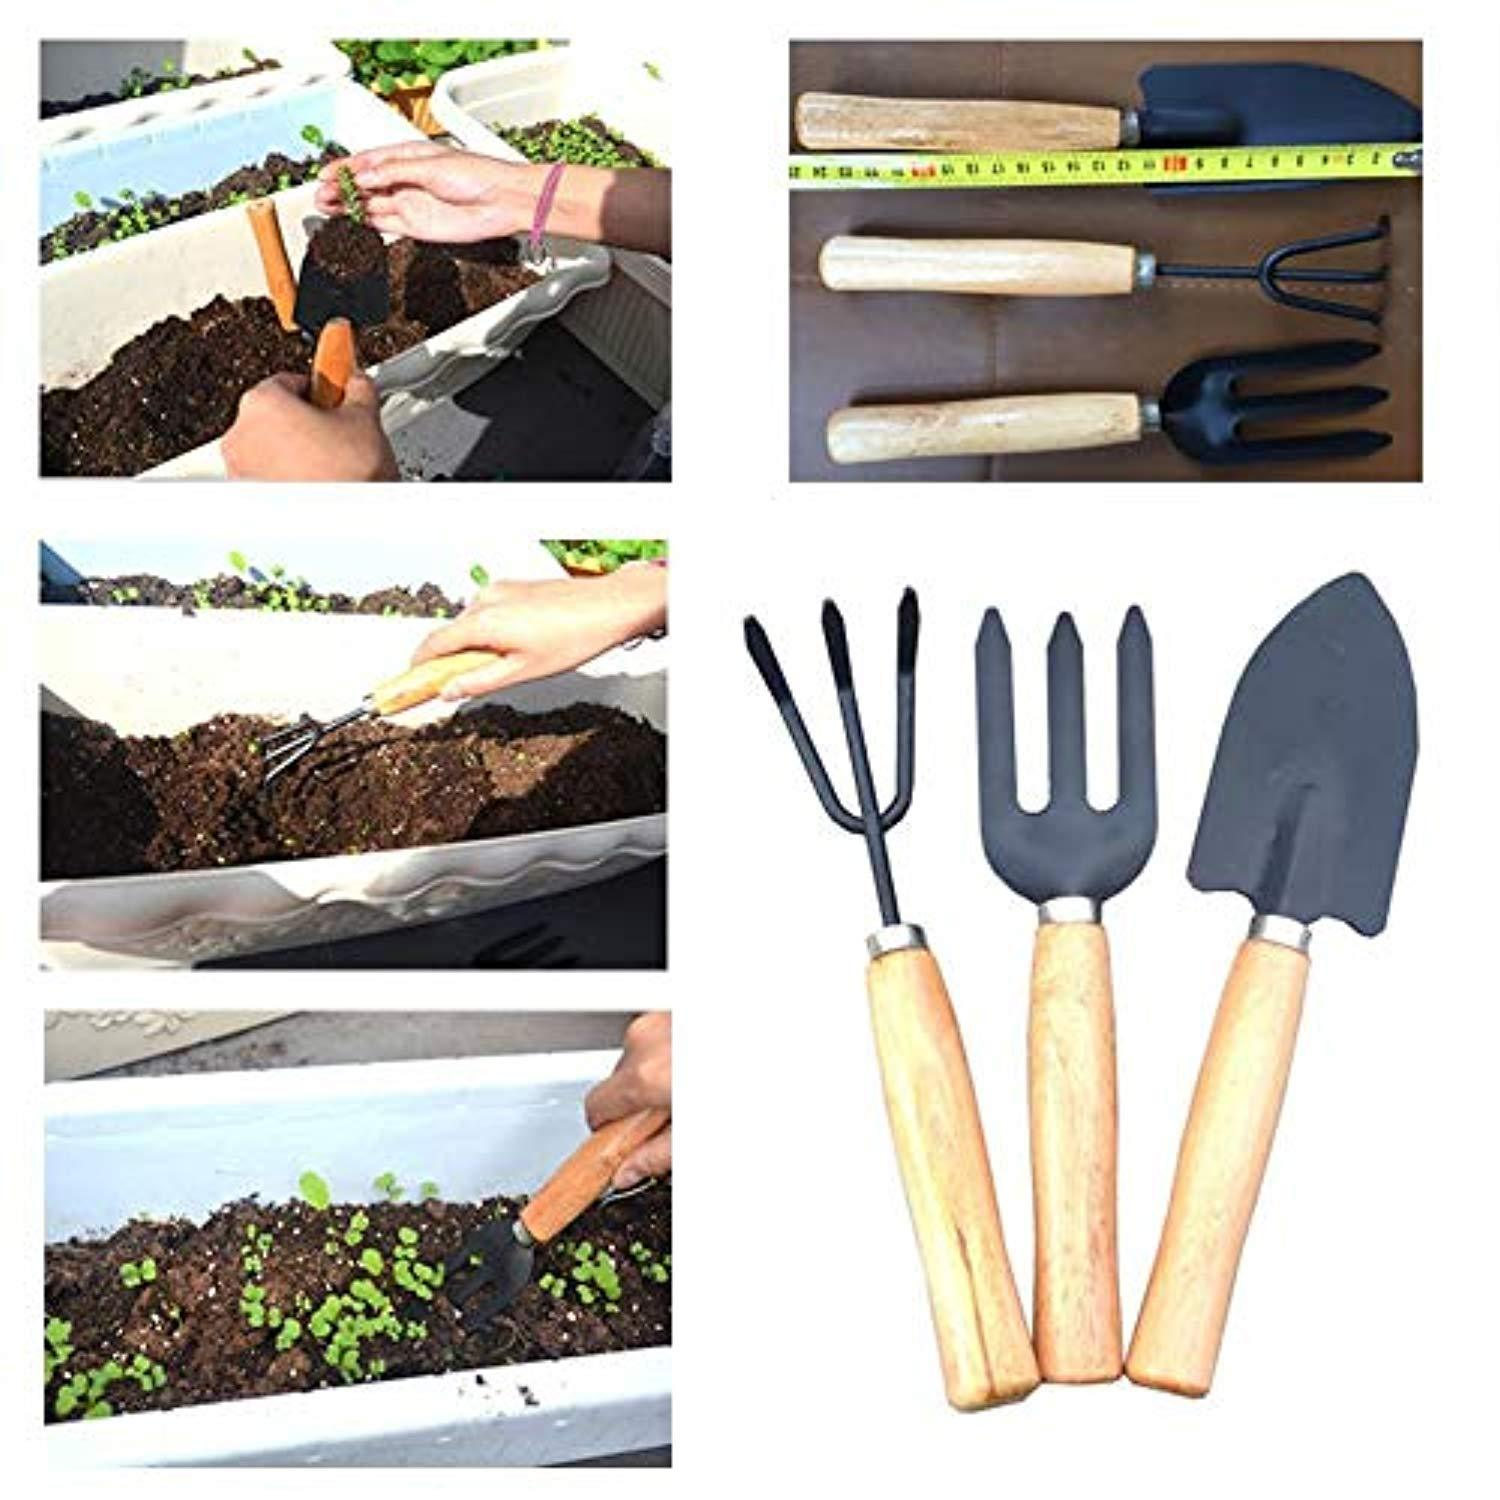 Unnati -  Gardening Hand Cultivator, Big Digging Trowel, Shovel & Garden Gloves with Claws for Digging & Planting - Unnati Enterprises